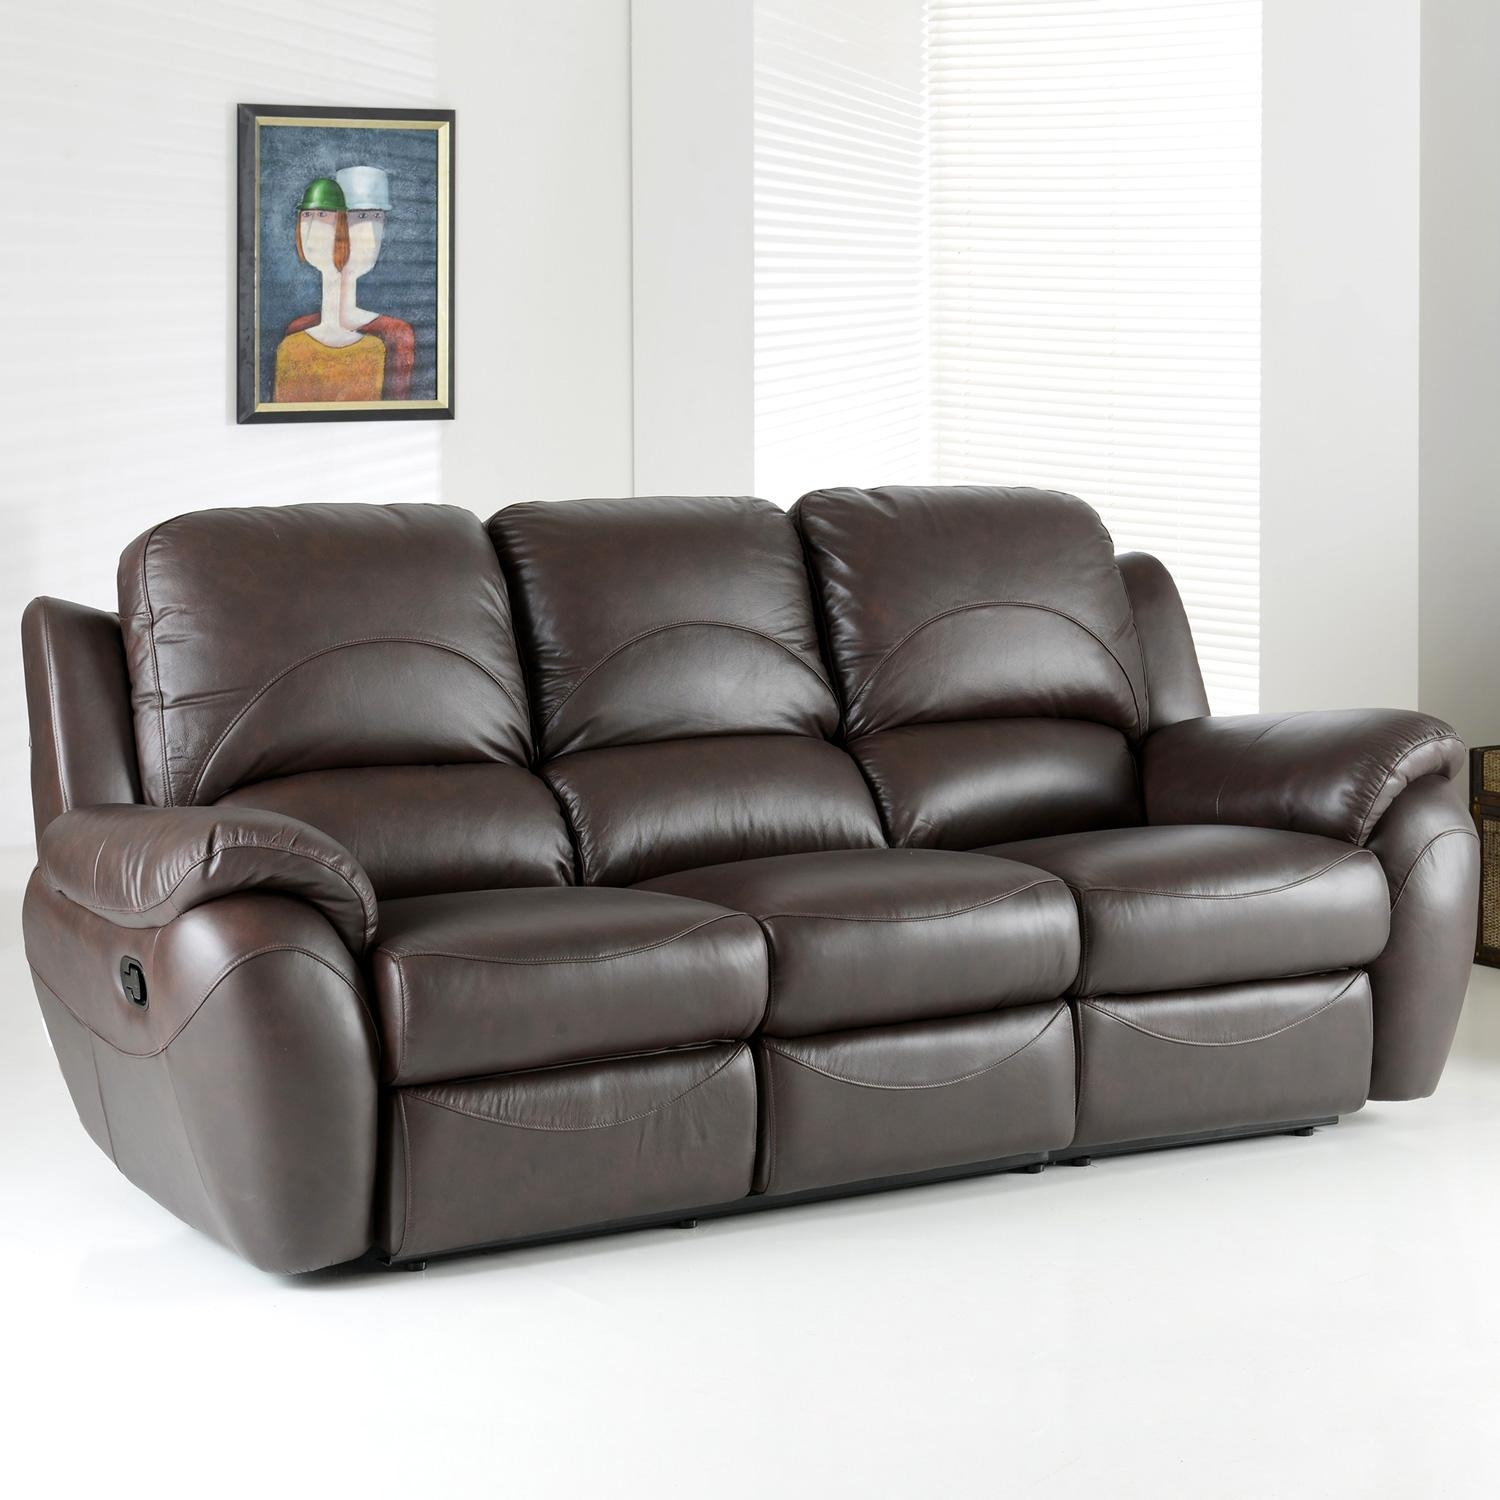 Sofas Center : Rareeater Reclinerofa Picture Design Kacey Chair In 3 Seater Leather Sofas (View 4 of 20)